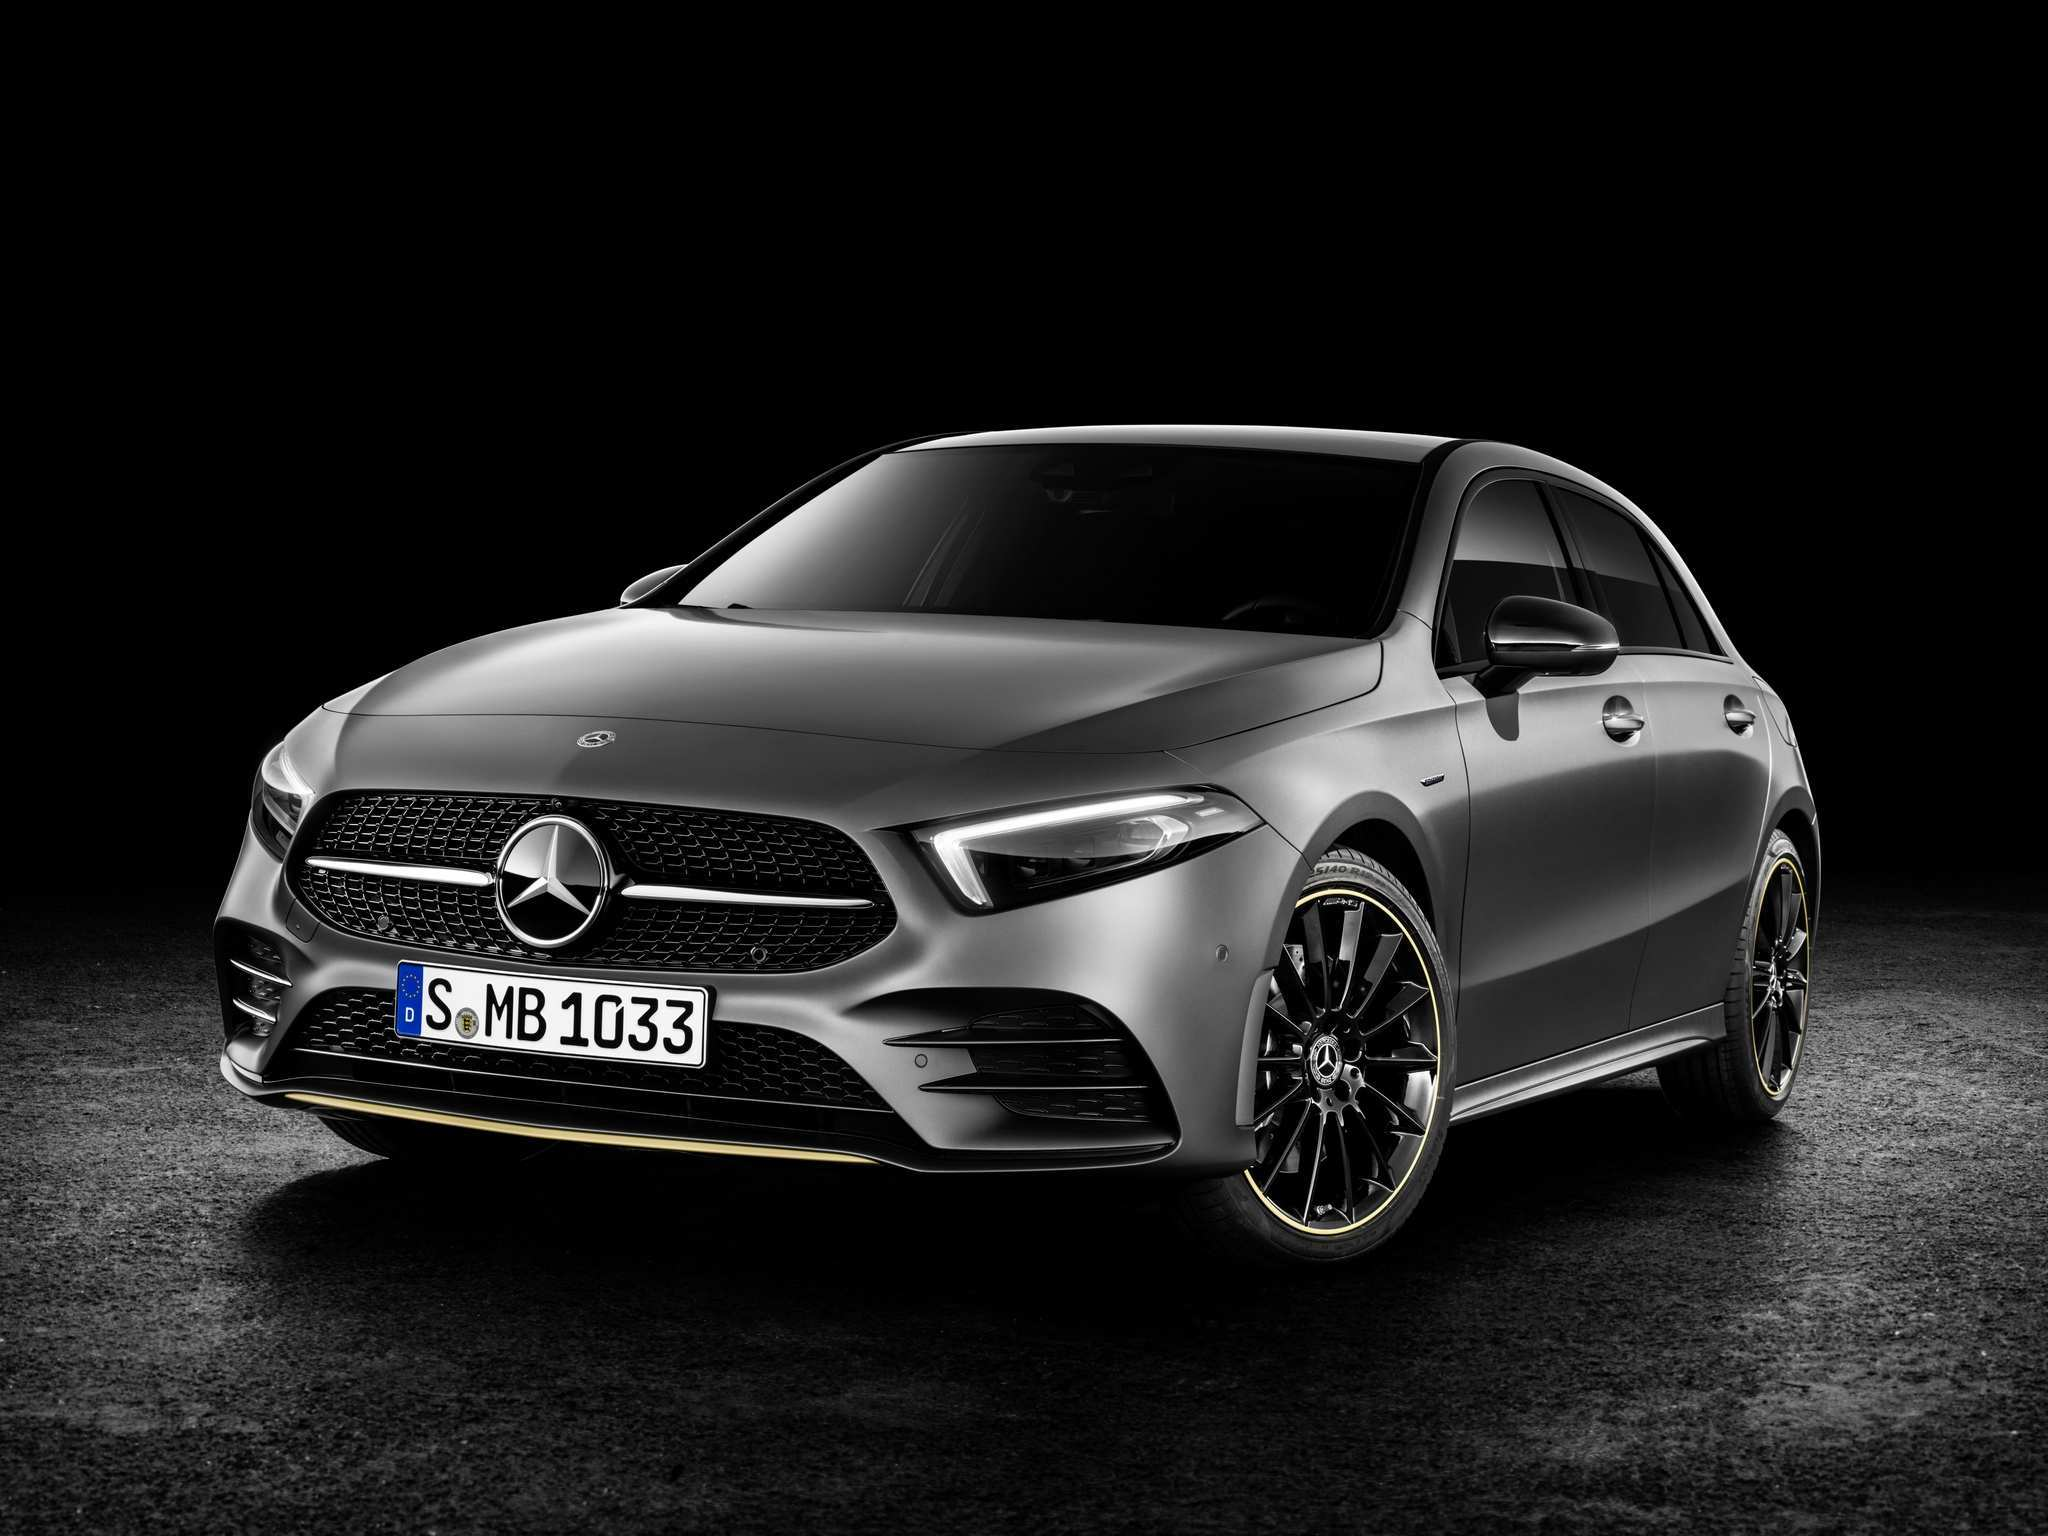 23 The Best Mercedes A200 Amg Line 2019 Release Date